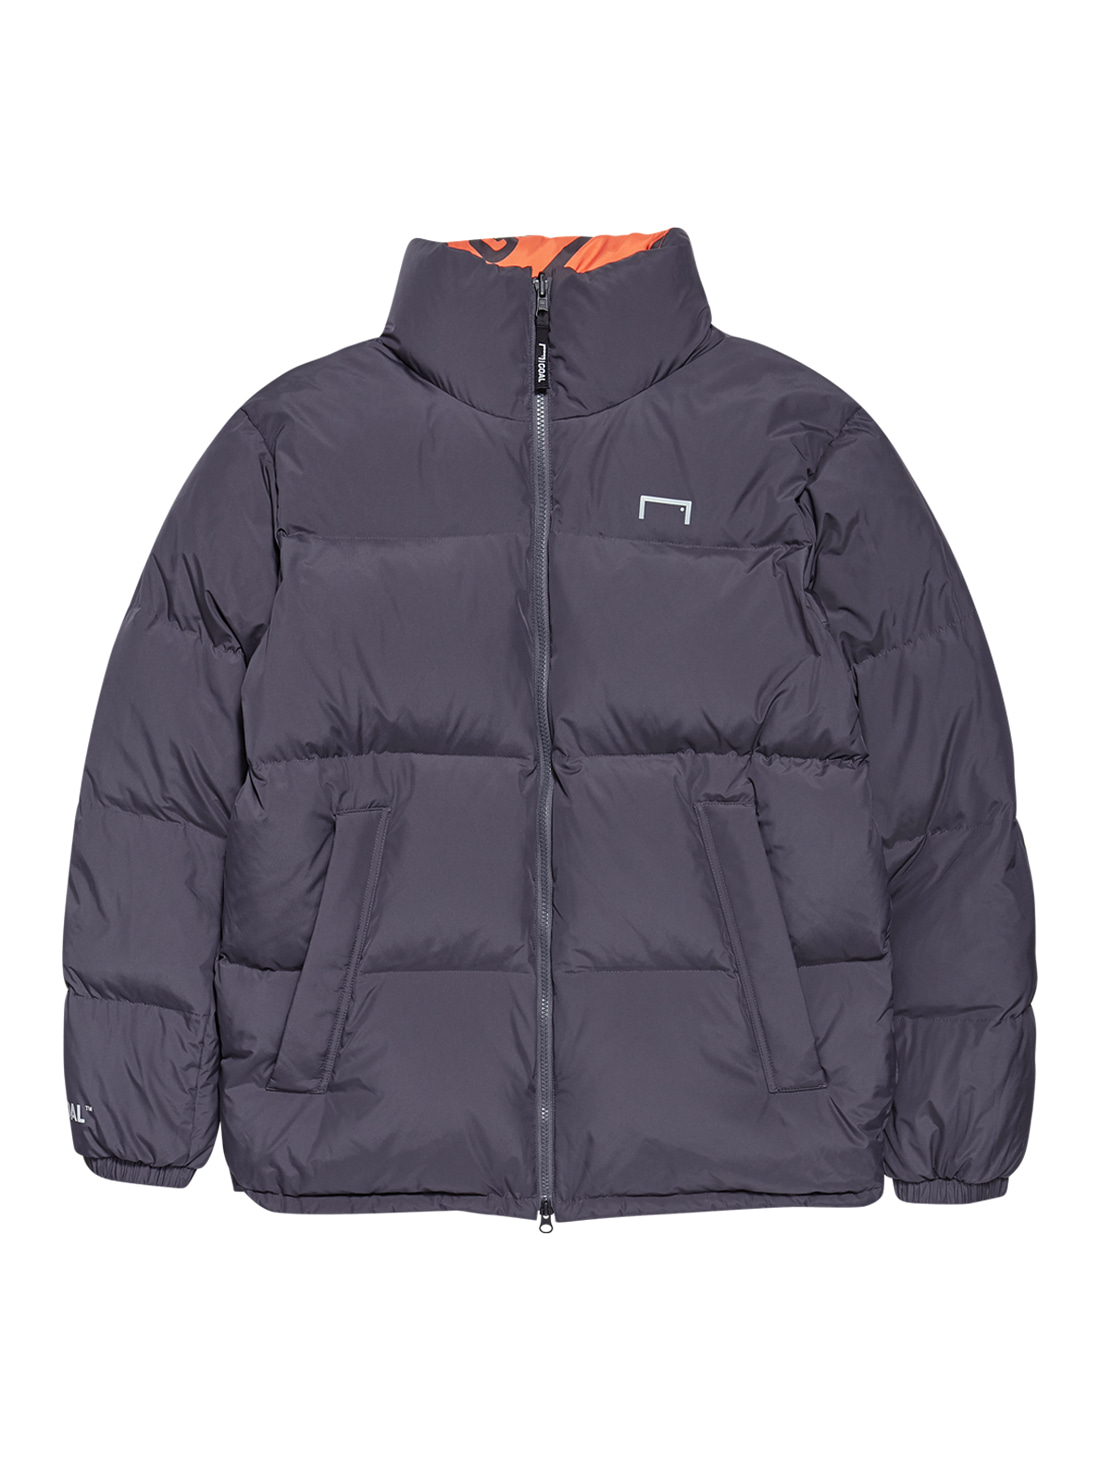 GOALSTUDIO (L,XL)REVERSIBLE DOWN PARKA - GREY/ORANGE